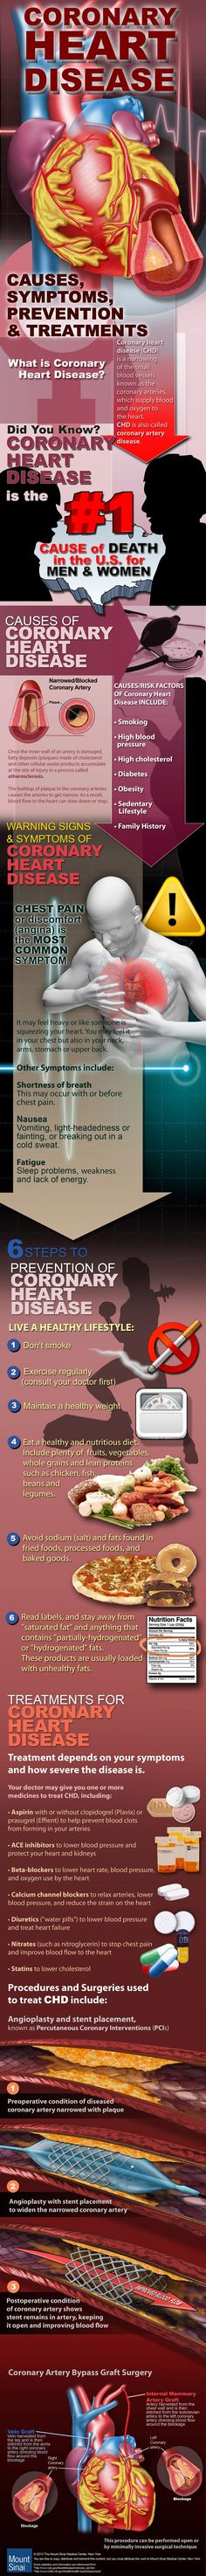 Mount Sinai Info on Coronary Heart Disease, Hoping more industries catch on to this trend, kudos !